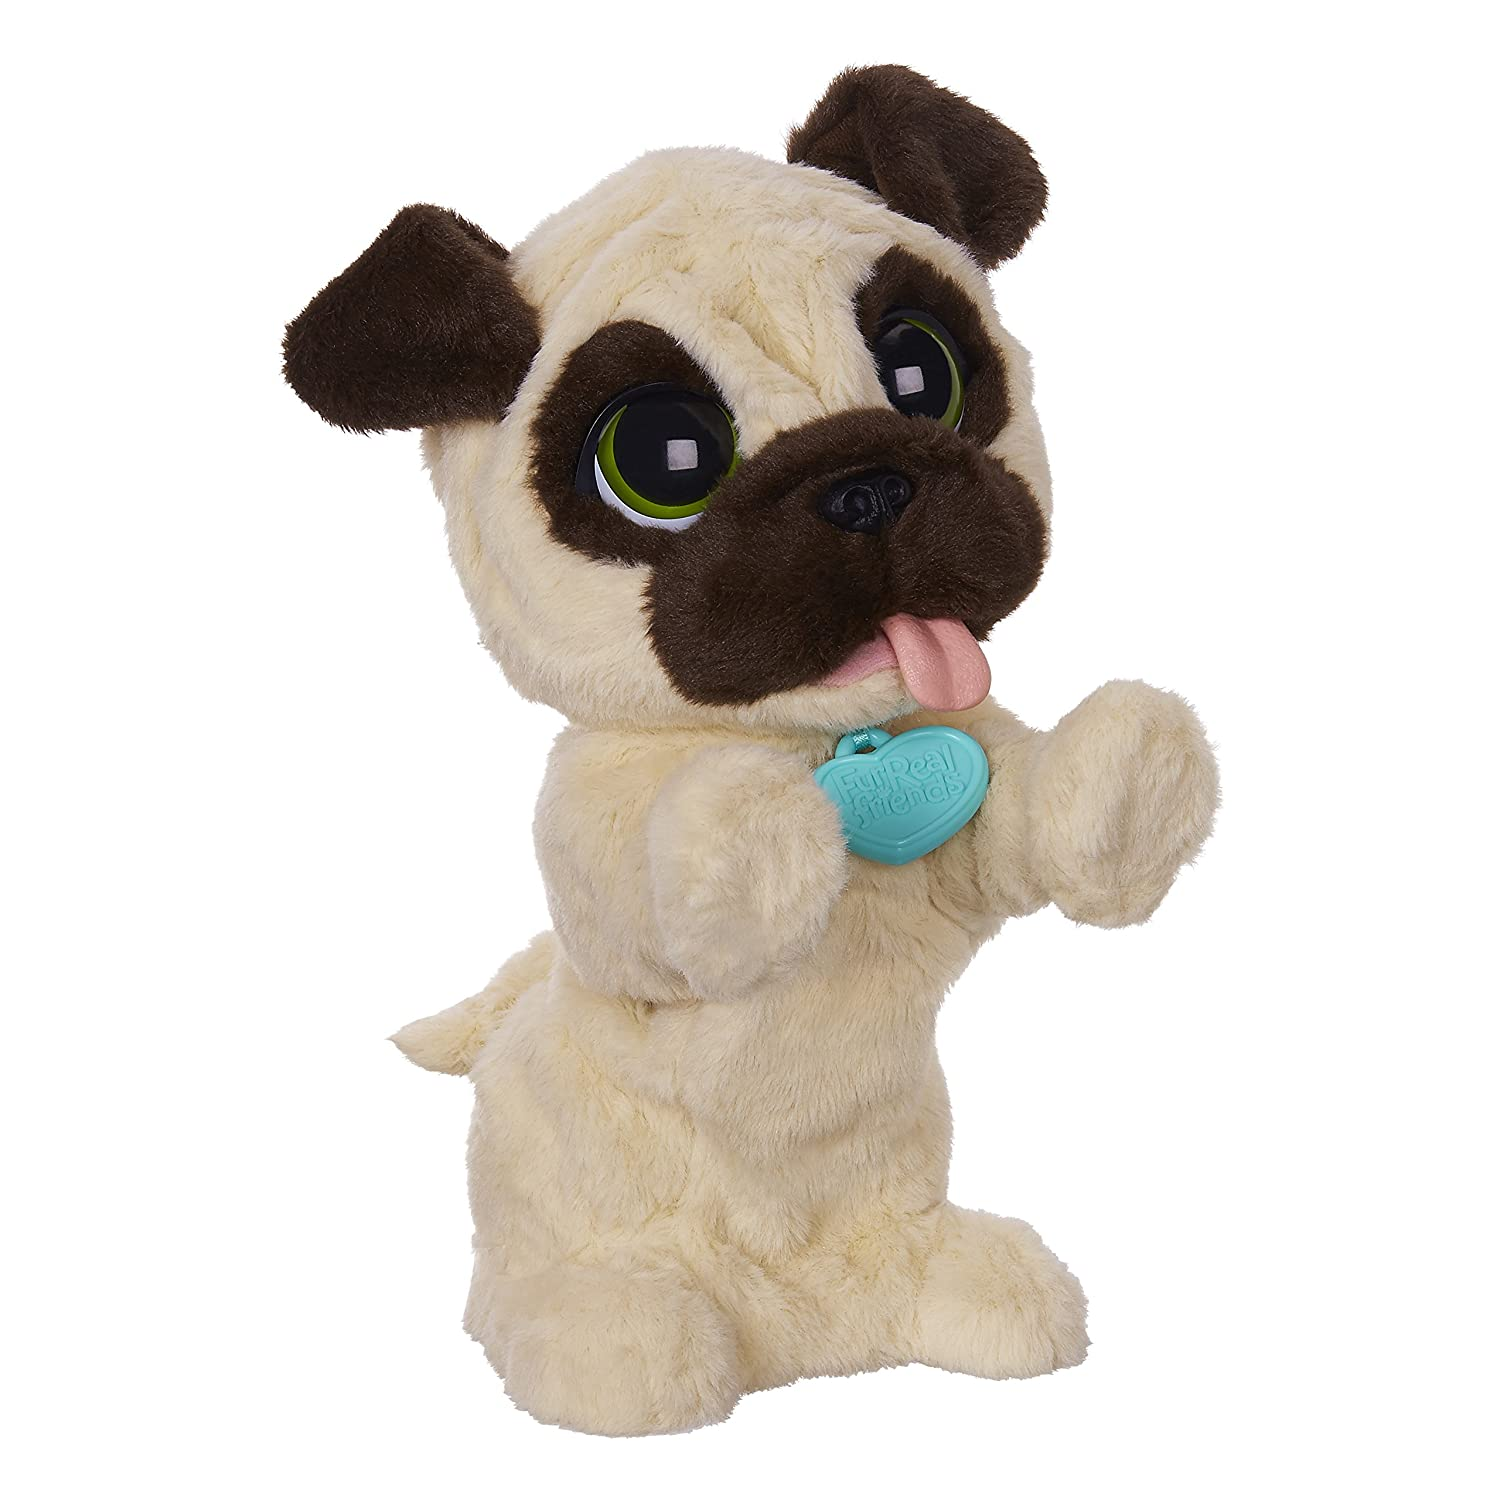 FurReal Friends JJ My Jumpin' Pug Pet Plush by Fur Real Friends